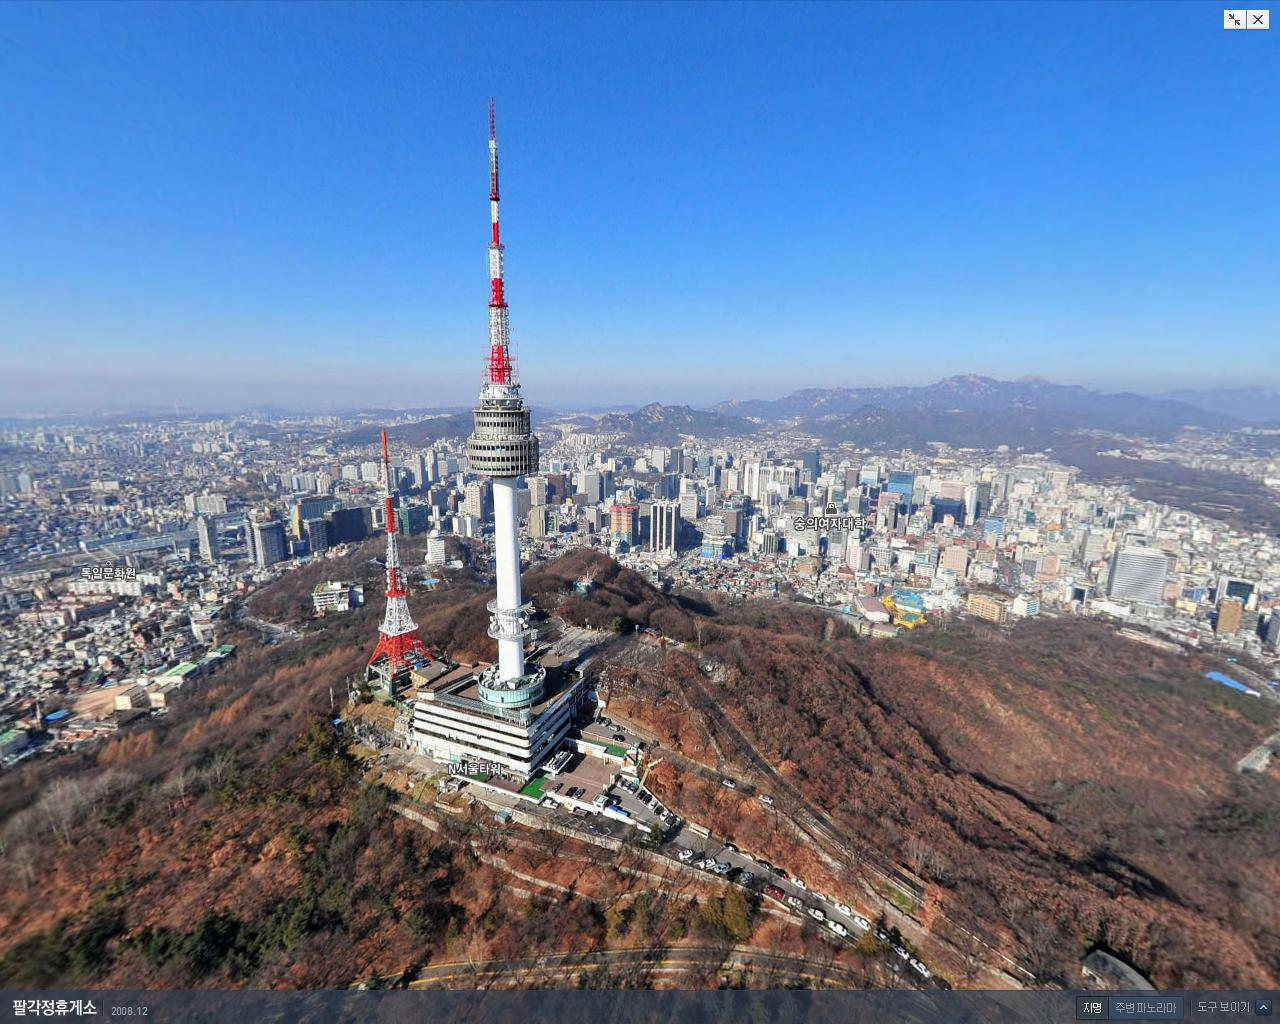 N Seoul Tower & Namsan Seoul, Namsan Park And Seoul Tower Ticket Price And Review | Travel Guide ...